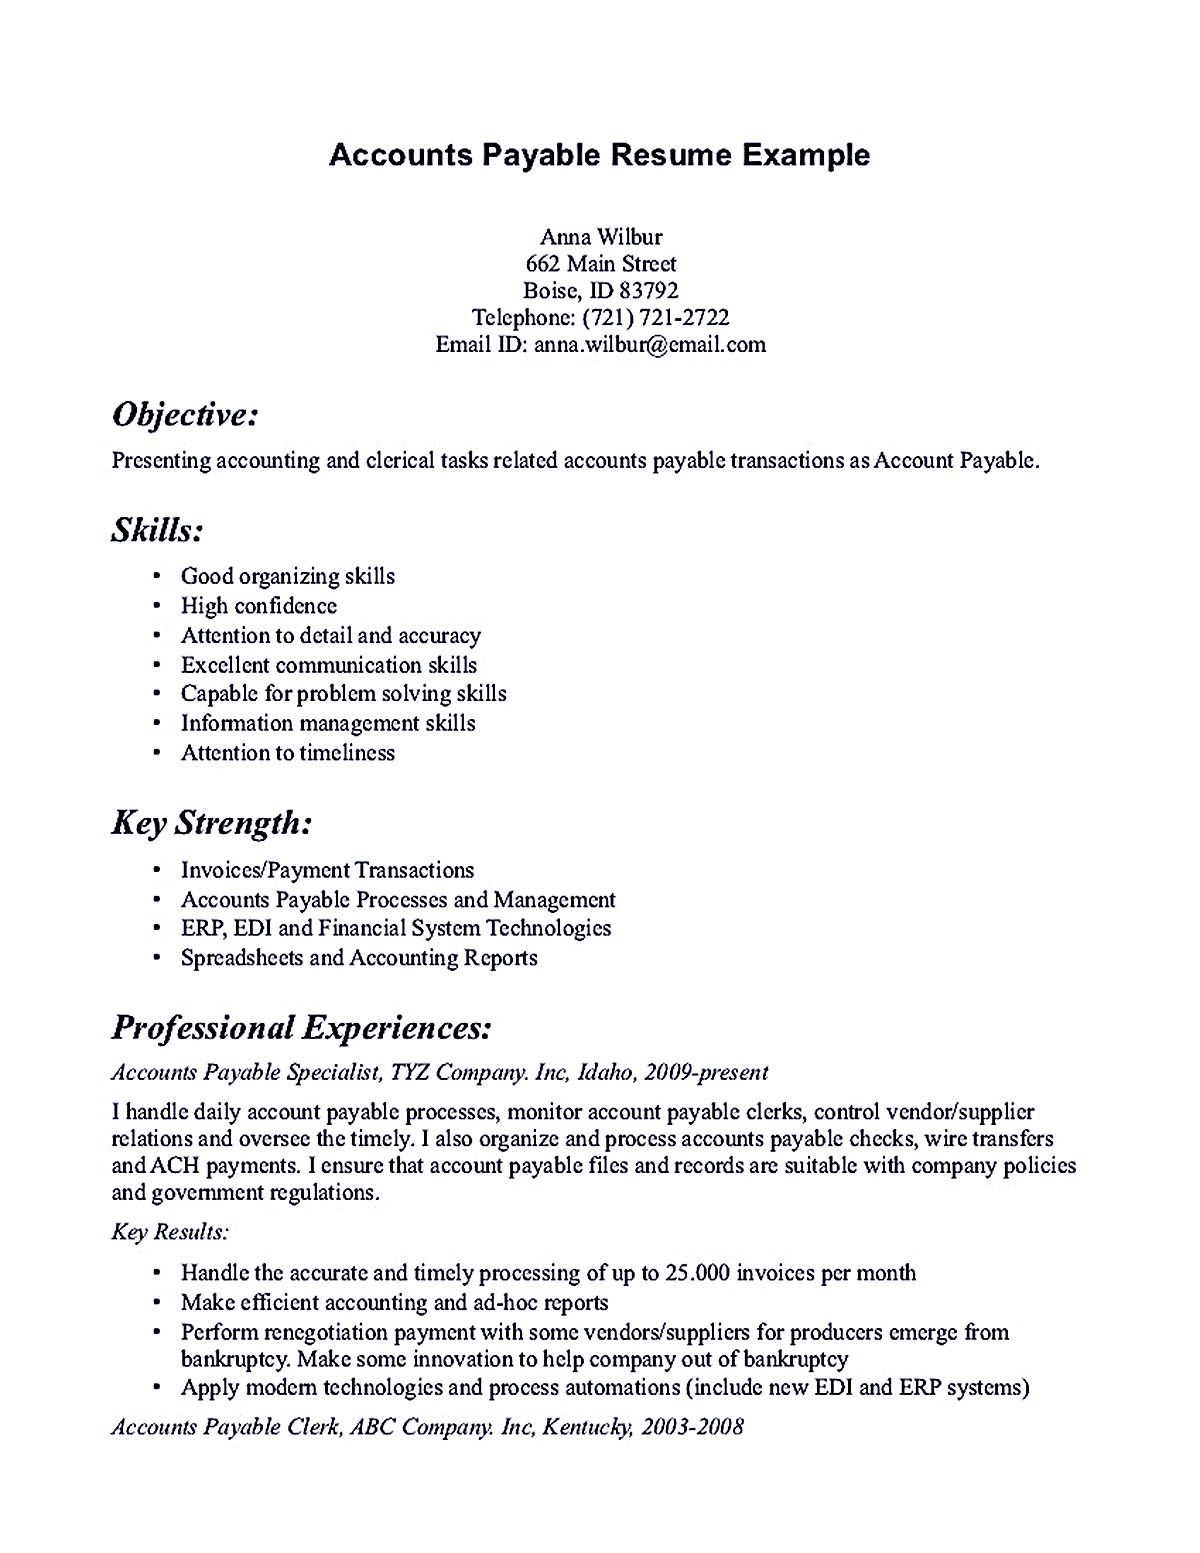 Account Payable Resume Display Your Skills As Account Payable Specialist The Interpersonal Skills Are Men Accounts Payable Resume Examples Job Resume Examples